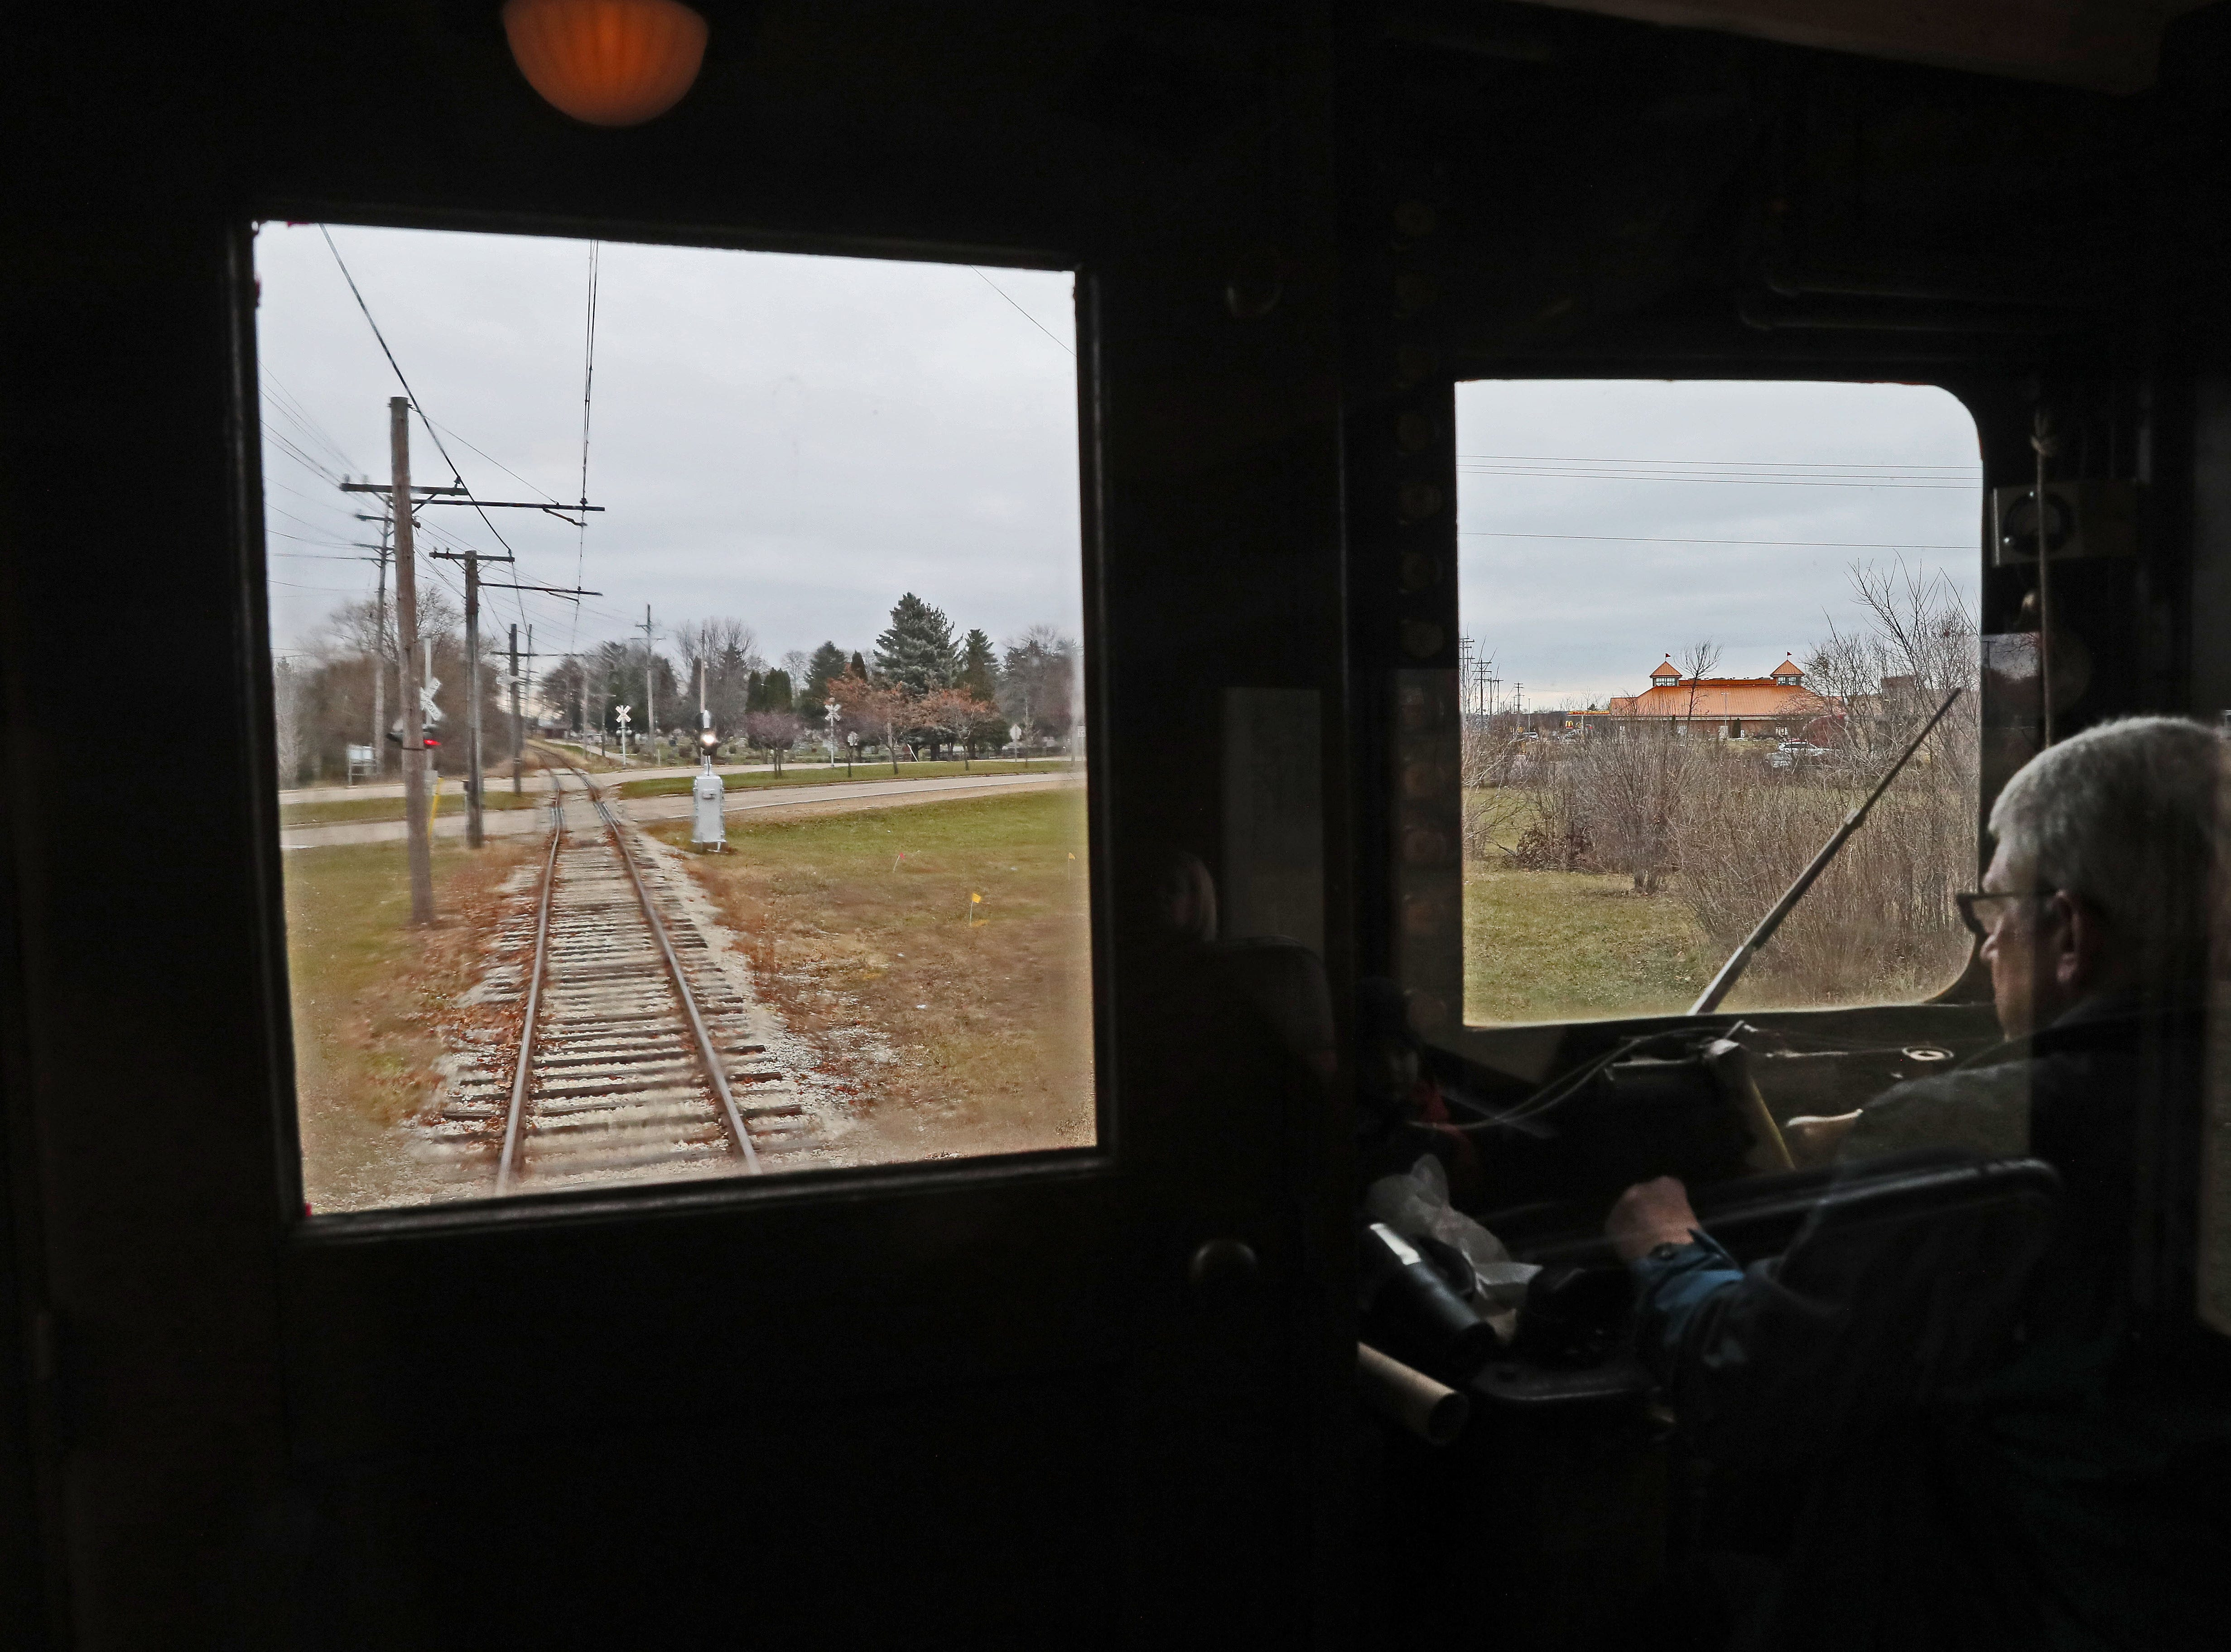 Enclosed in his own compartment, Bob Ryan, the motorman, is at the controls of the train on its leisurely trip to Mukwonago.